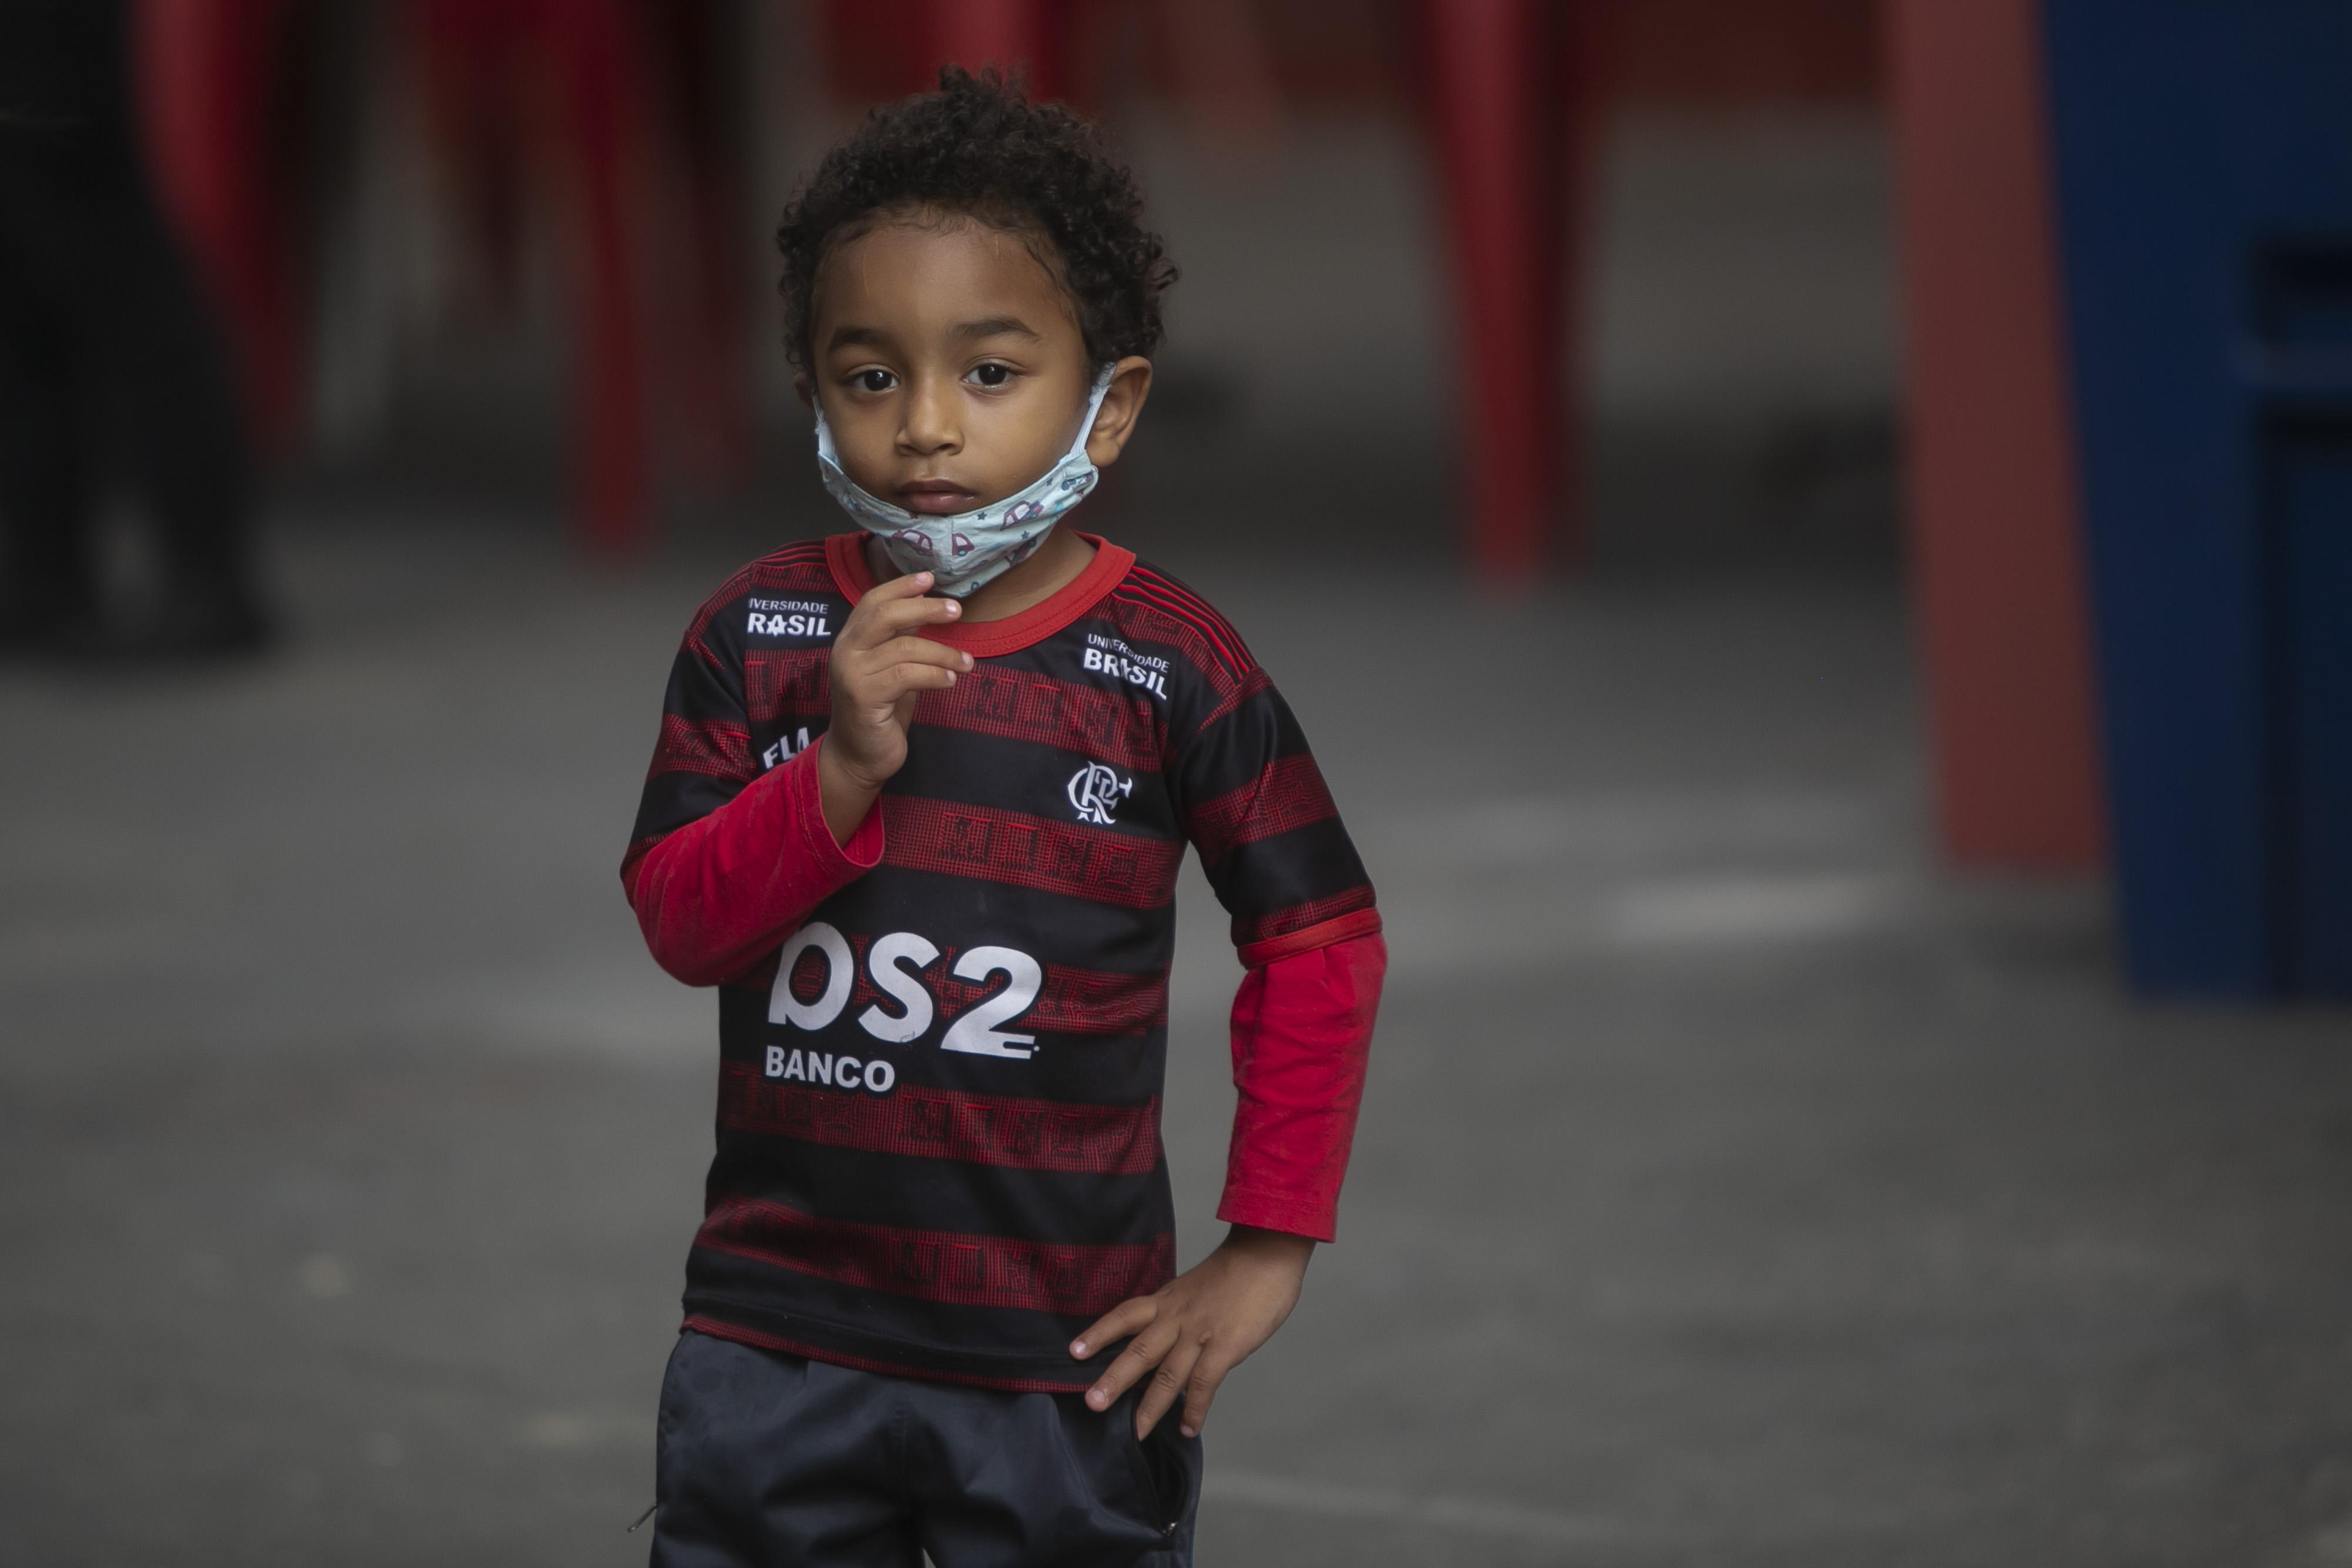 RIO DE JANEIRO, BRAZIL - JUNE 05: The son of a member of the 'Torcida Urubuzada' (soccer fans) of Flamengo looks on during the donation of food amidst the coronavirus (COVID-19) pandemic in the Tijuca neighborhood on June 5, 2020 in Rio de Janeiro, Brazil. Around 100 packs of food were distributed by the 'Torcida Urubuzada' of Flamengo to self-employed stadium vendors. According to the Brazilian Health Ministry, Brazil has over 630,000 positive cases of coronavirus (COVID-19) and more than 34,600 deaths. (Photo by Bruna Prado/Getty Images)